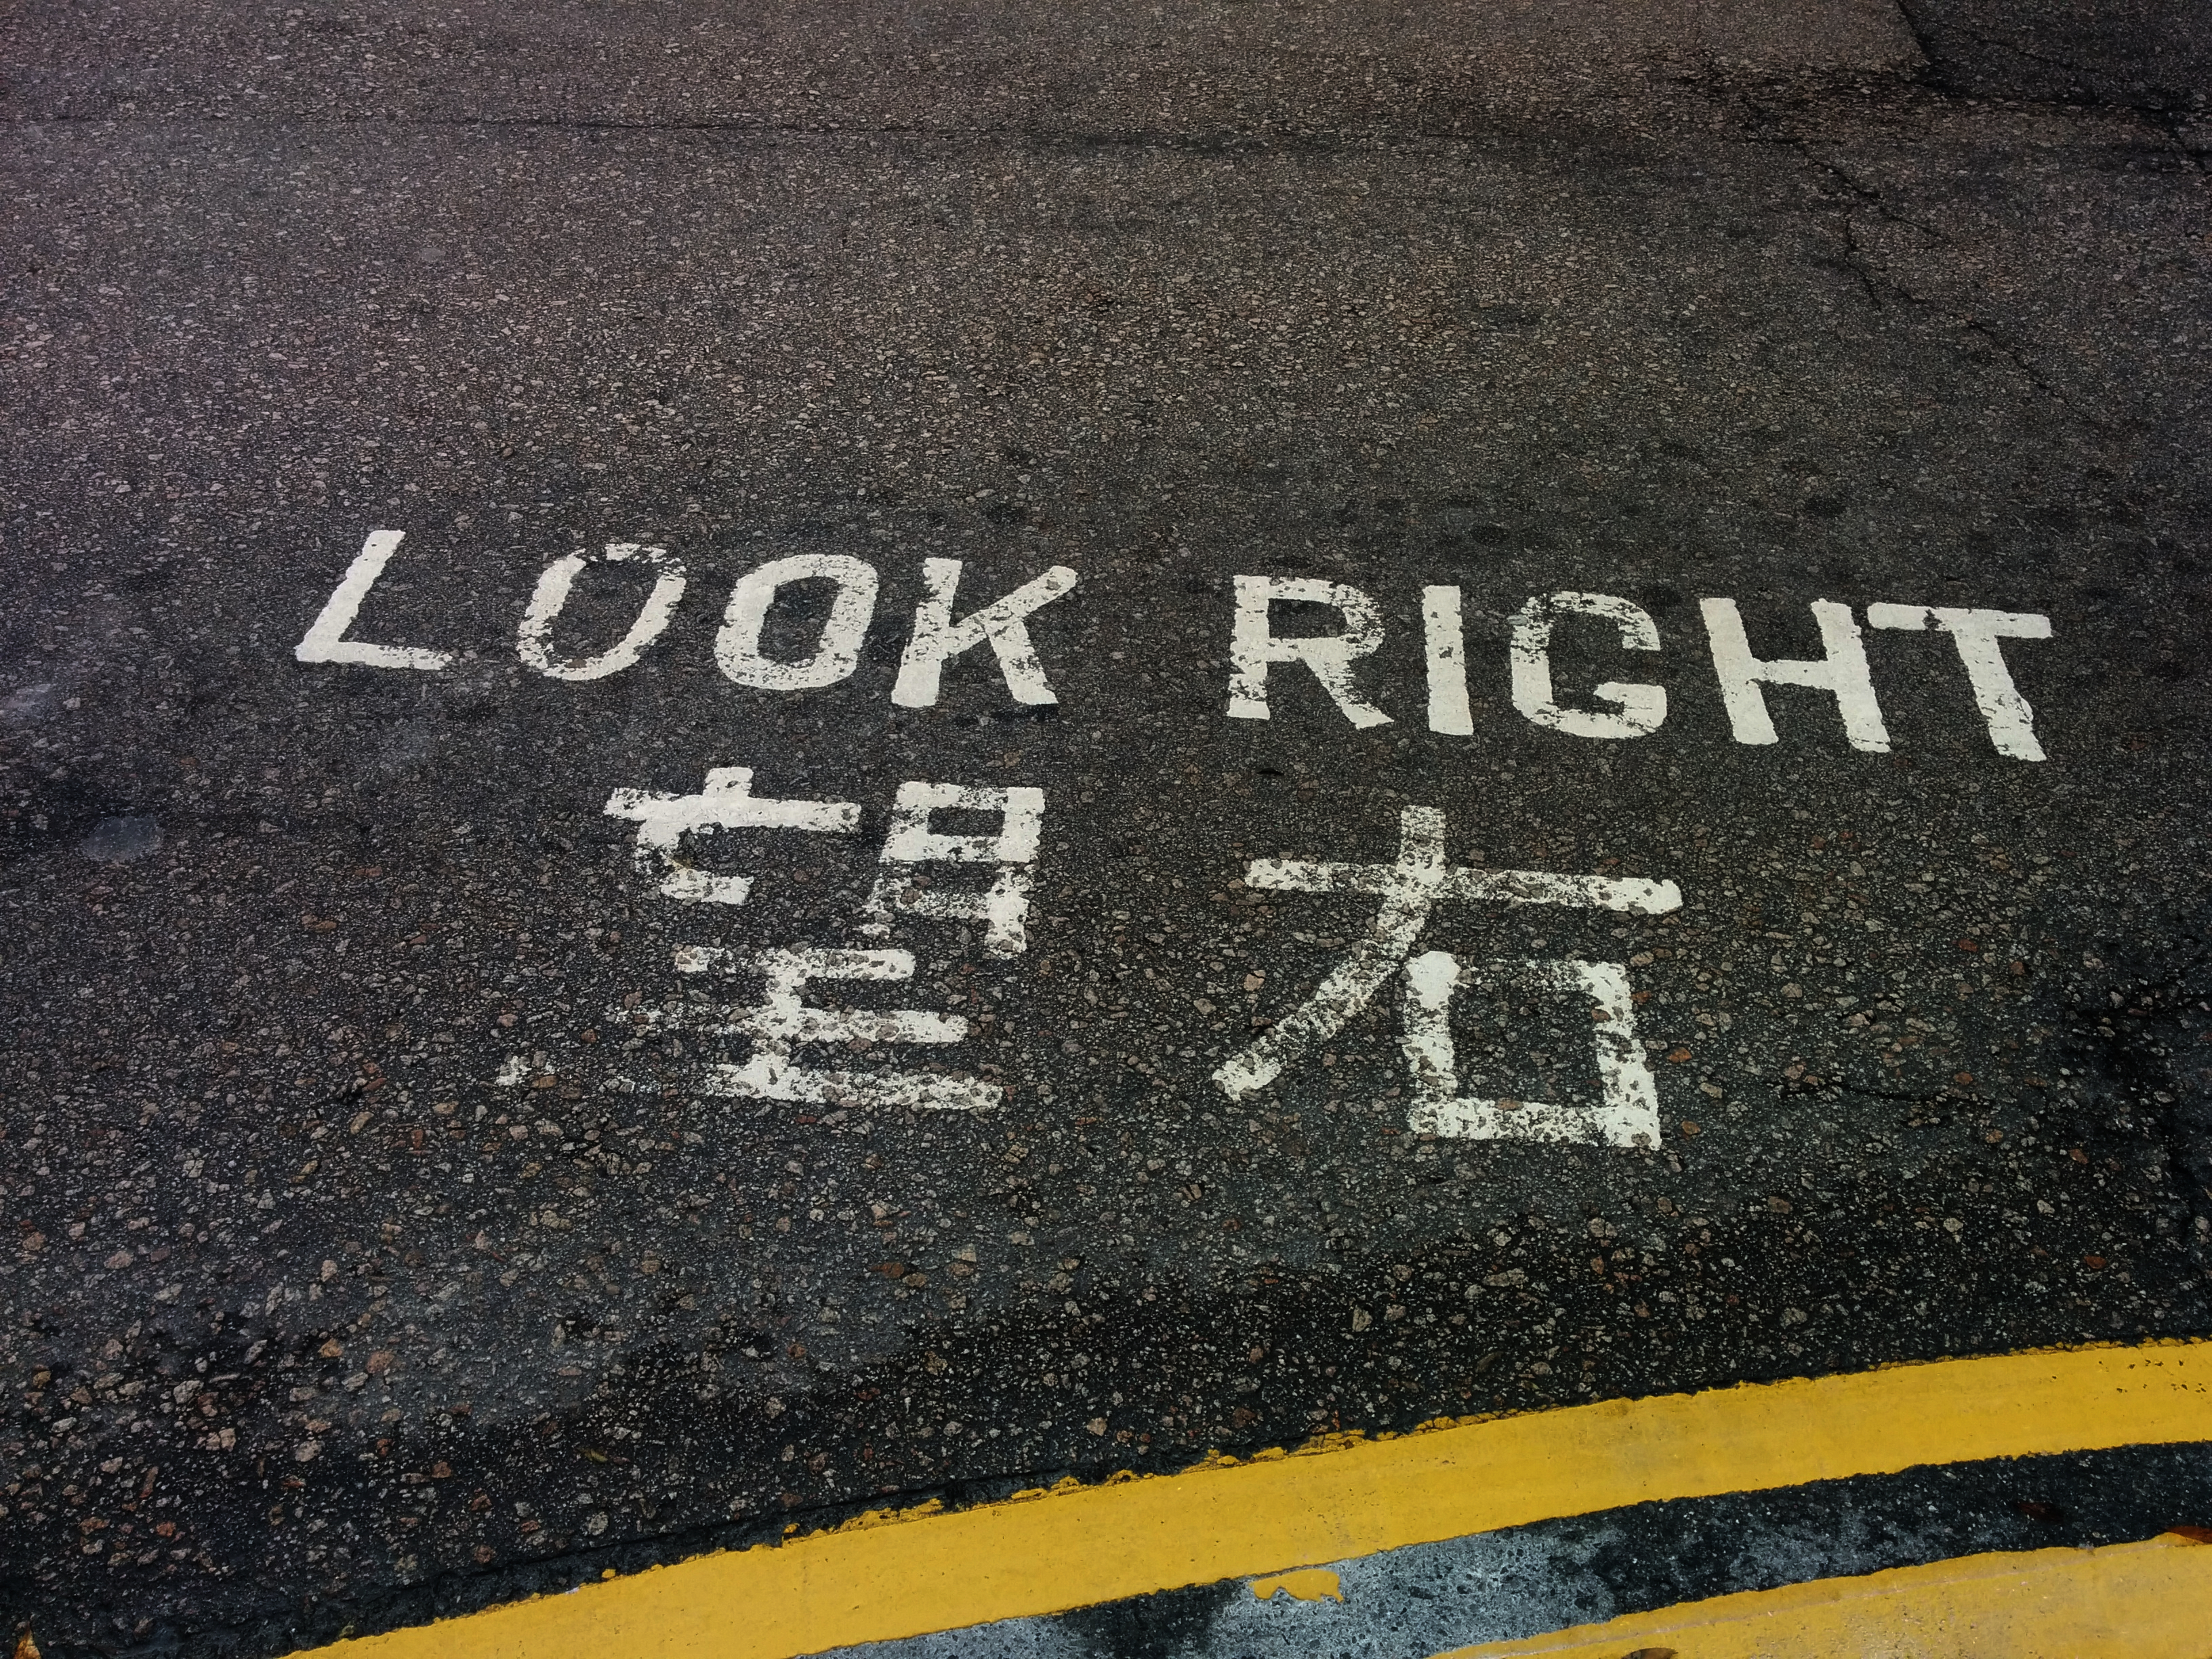 Look Right painted on a street.